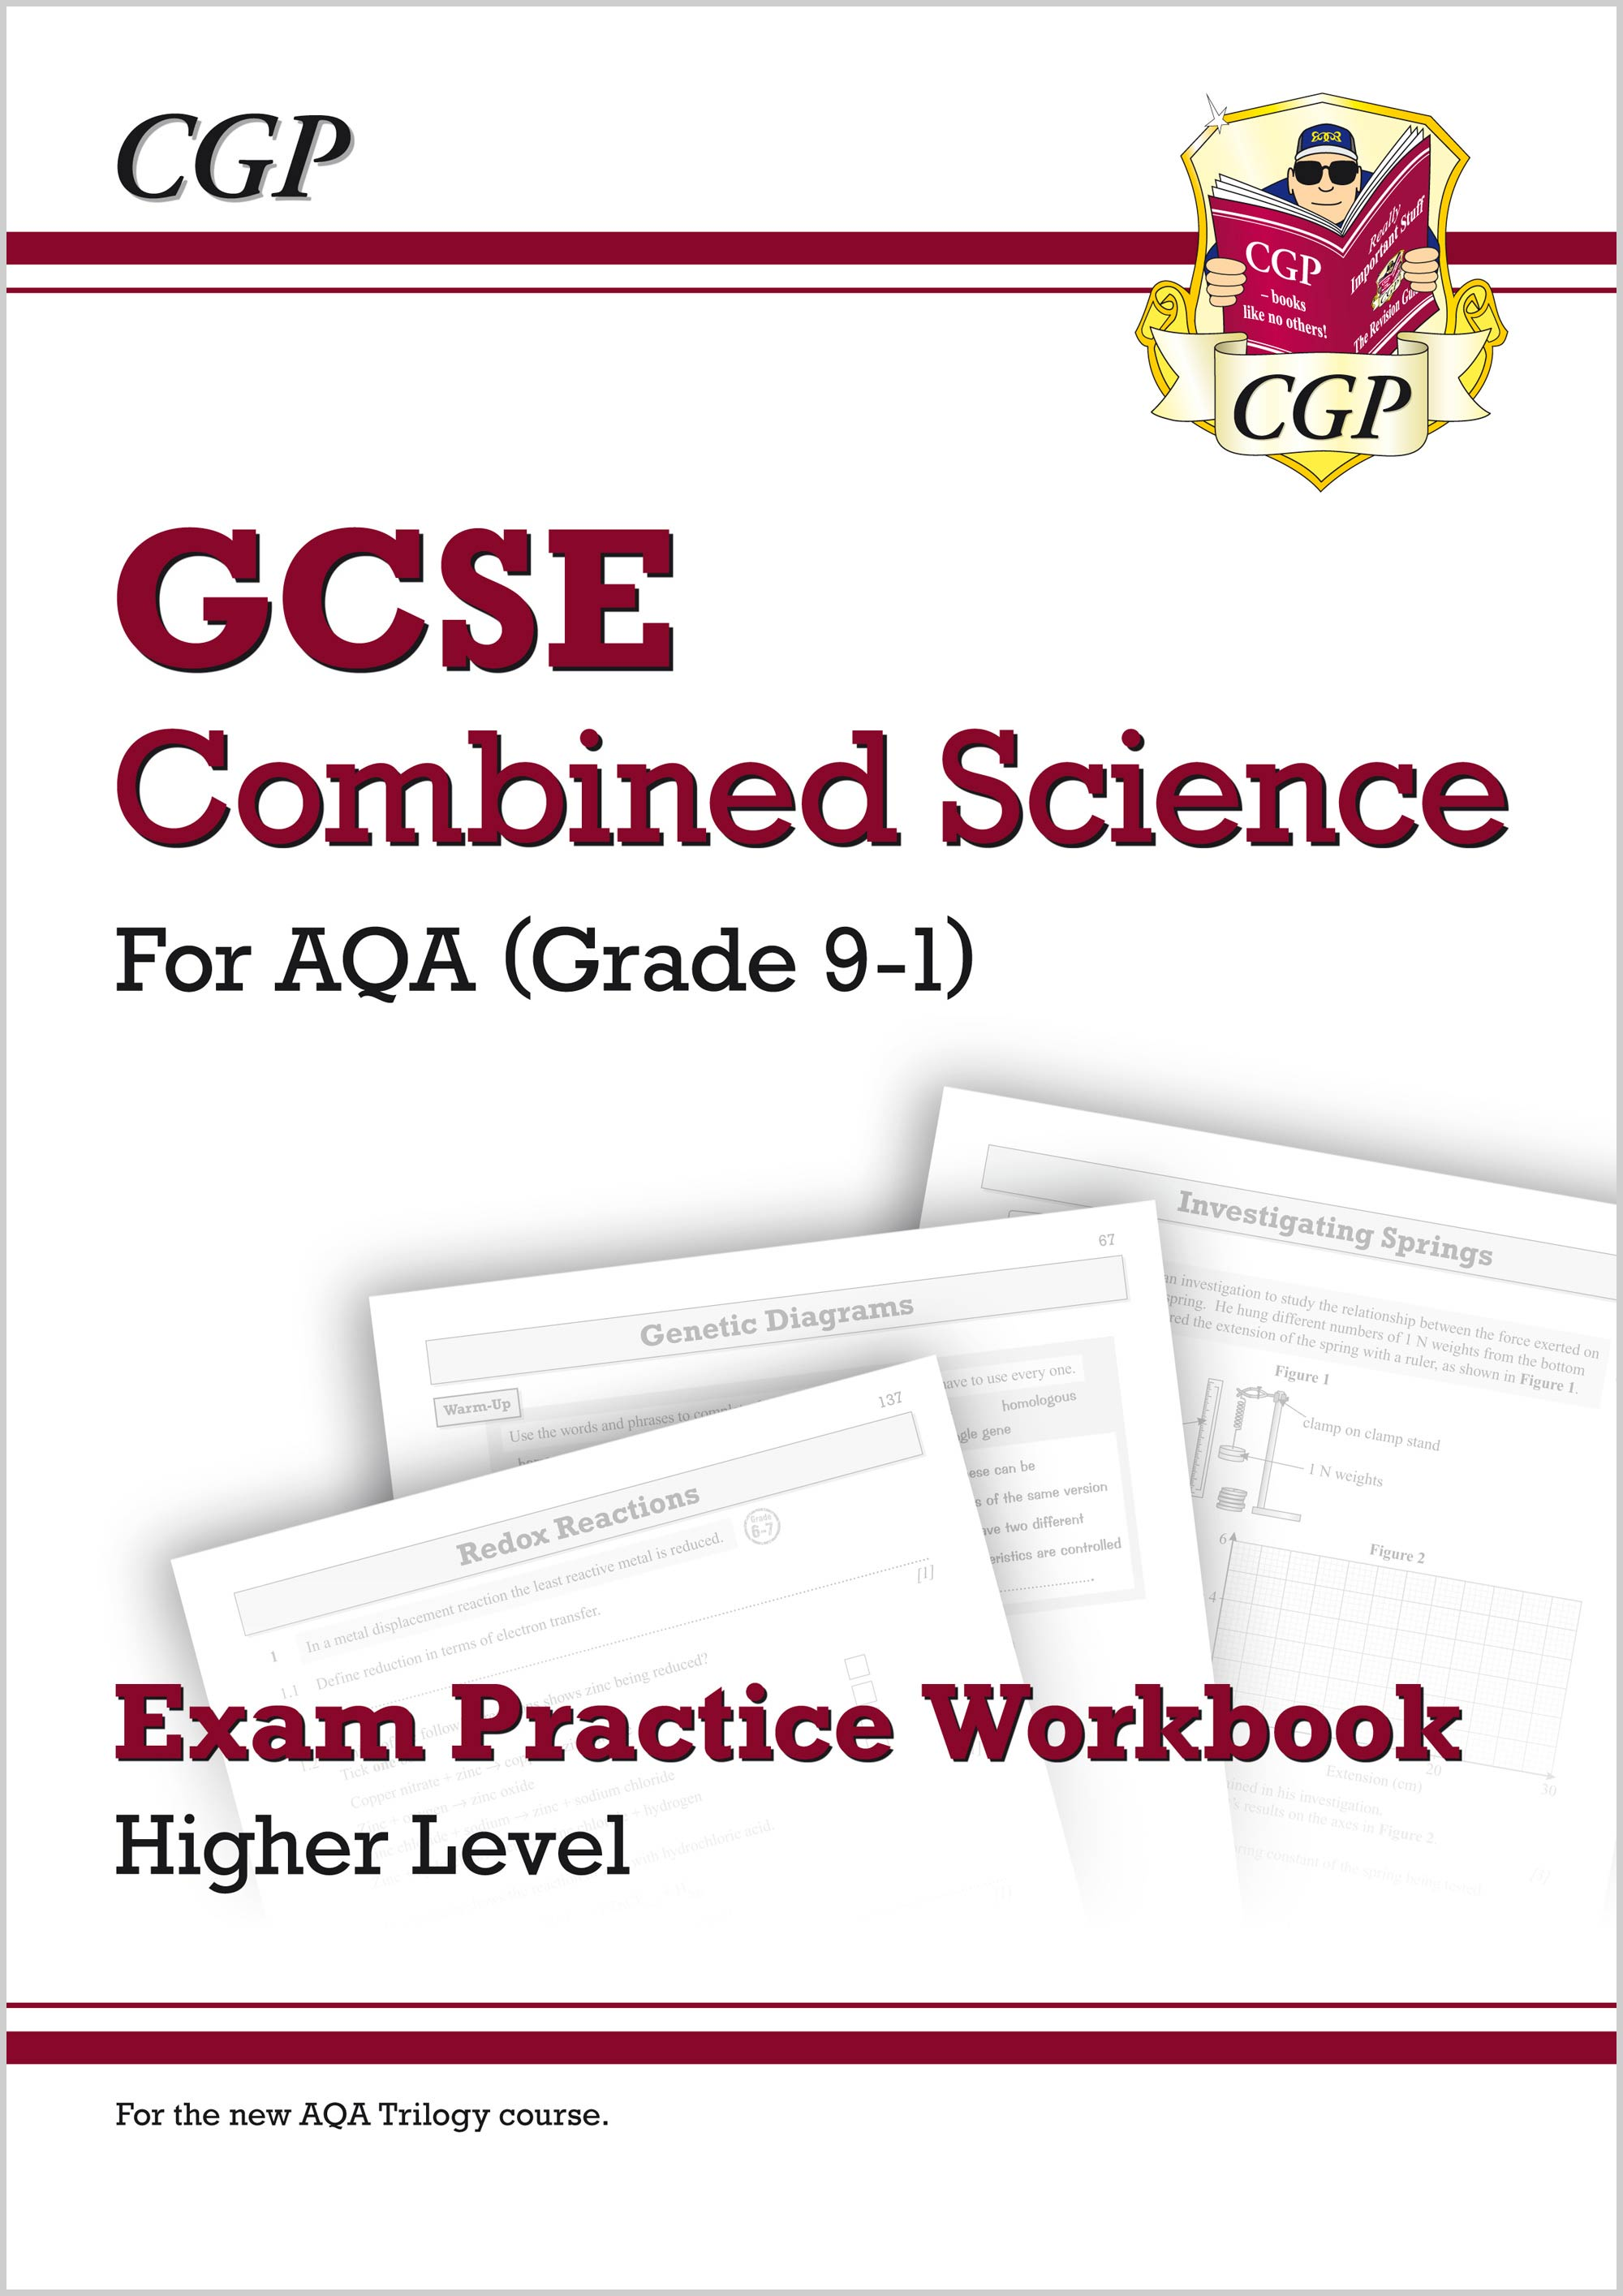 SAHQ41 - Grade 9-1 GCSE Combined Science: AQA Exam Practice Workbook - Higher